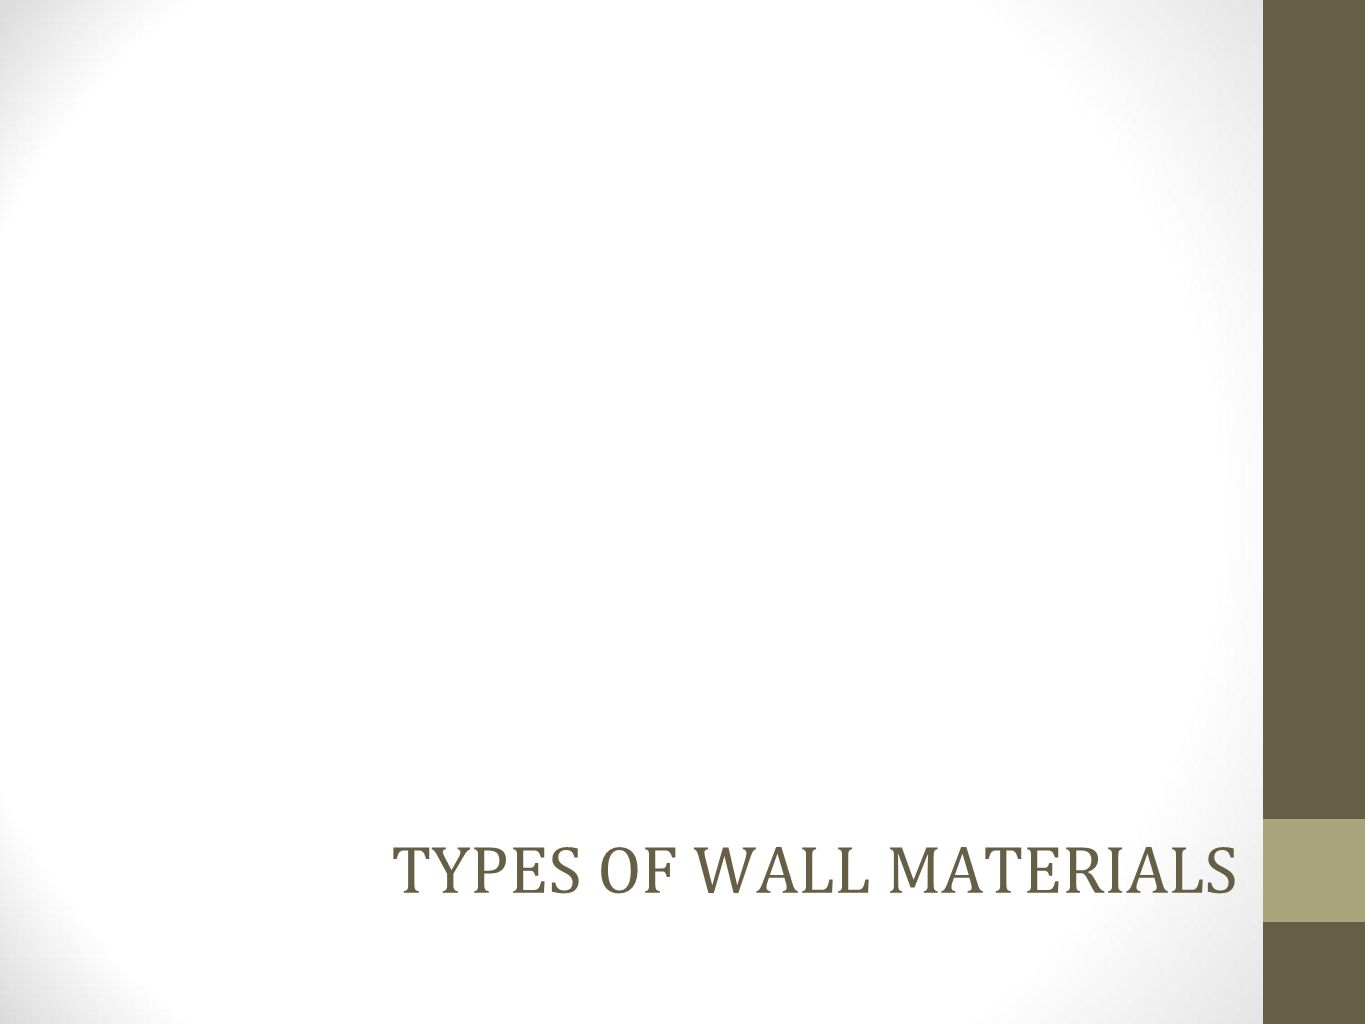 TYPES OF WALL MATERIALS